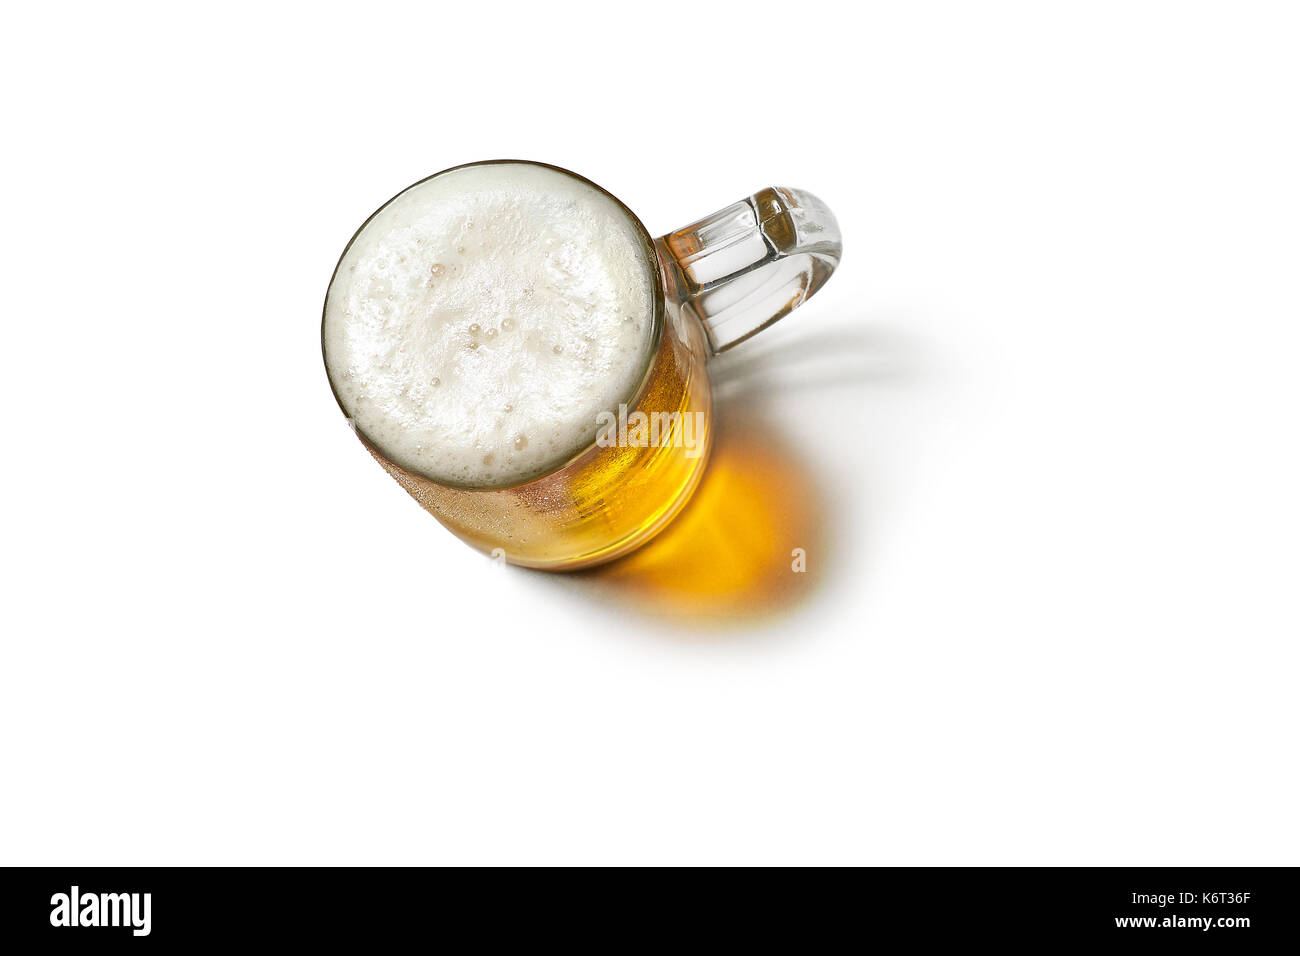 Beer mug isolated on white background.Top view - Stock Image